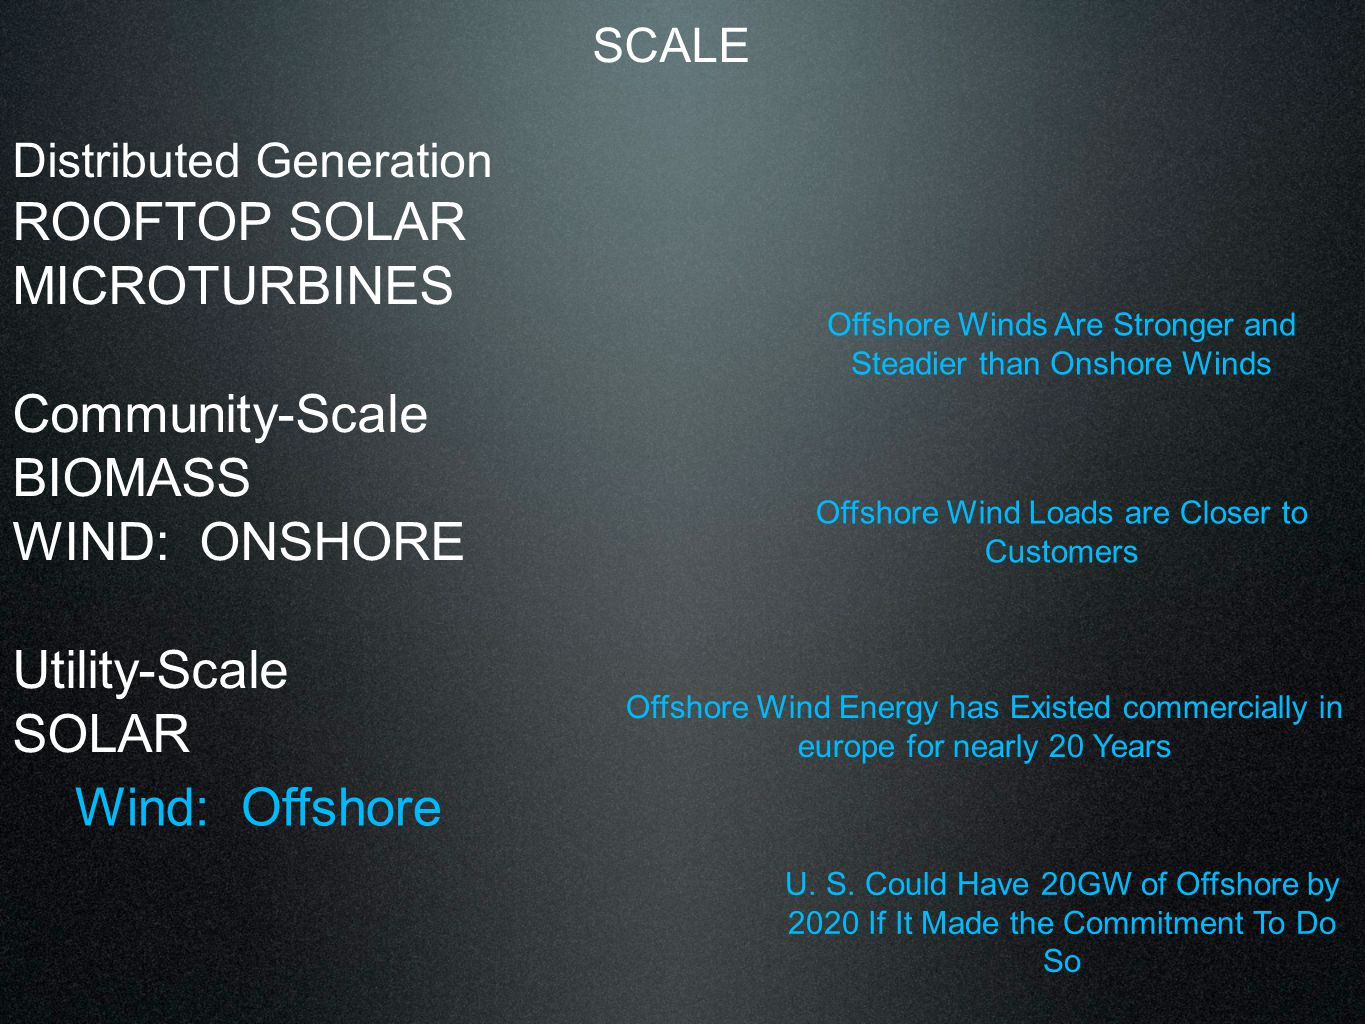 SCALE Distributed Generation ROOFTOP SOLAR MICROTURBINES Community-Scale BIOMASS WIND: ONSHORE Utility-Scale SOLAR Biomass Wind: Offshore U.